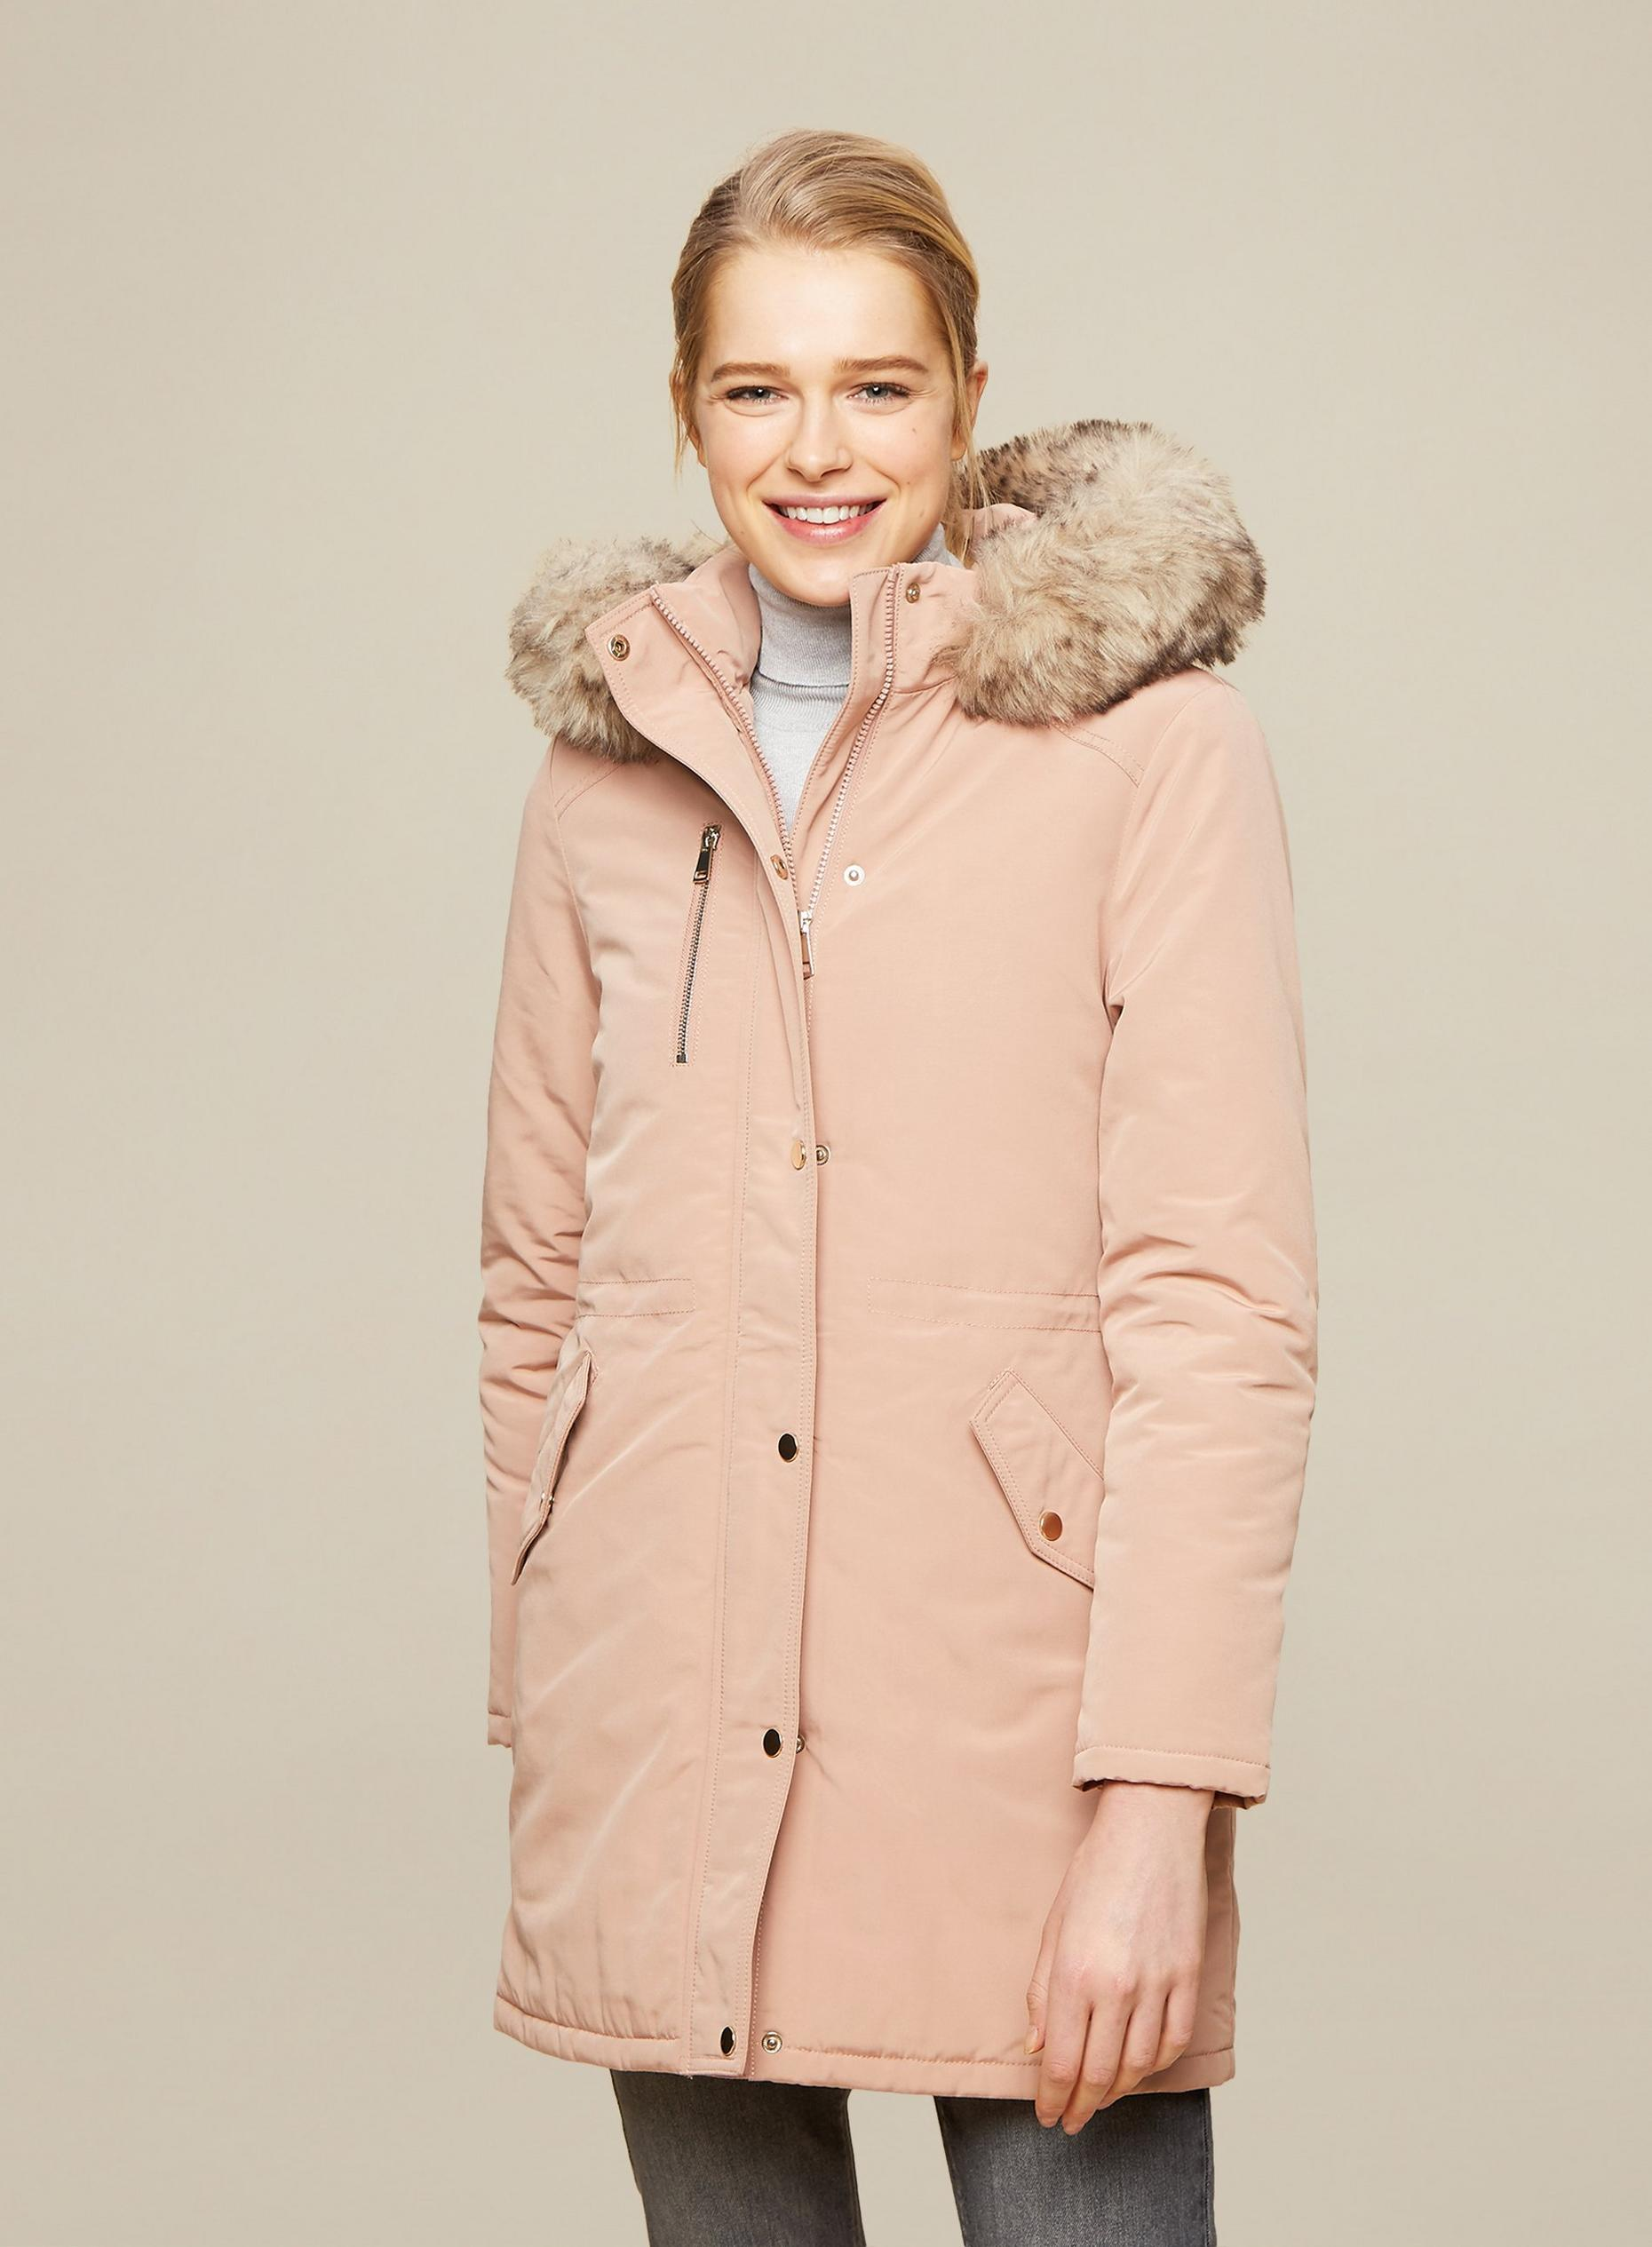 Blush Luxe Parka